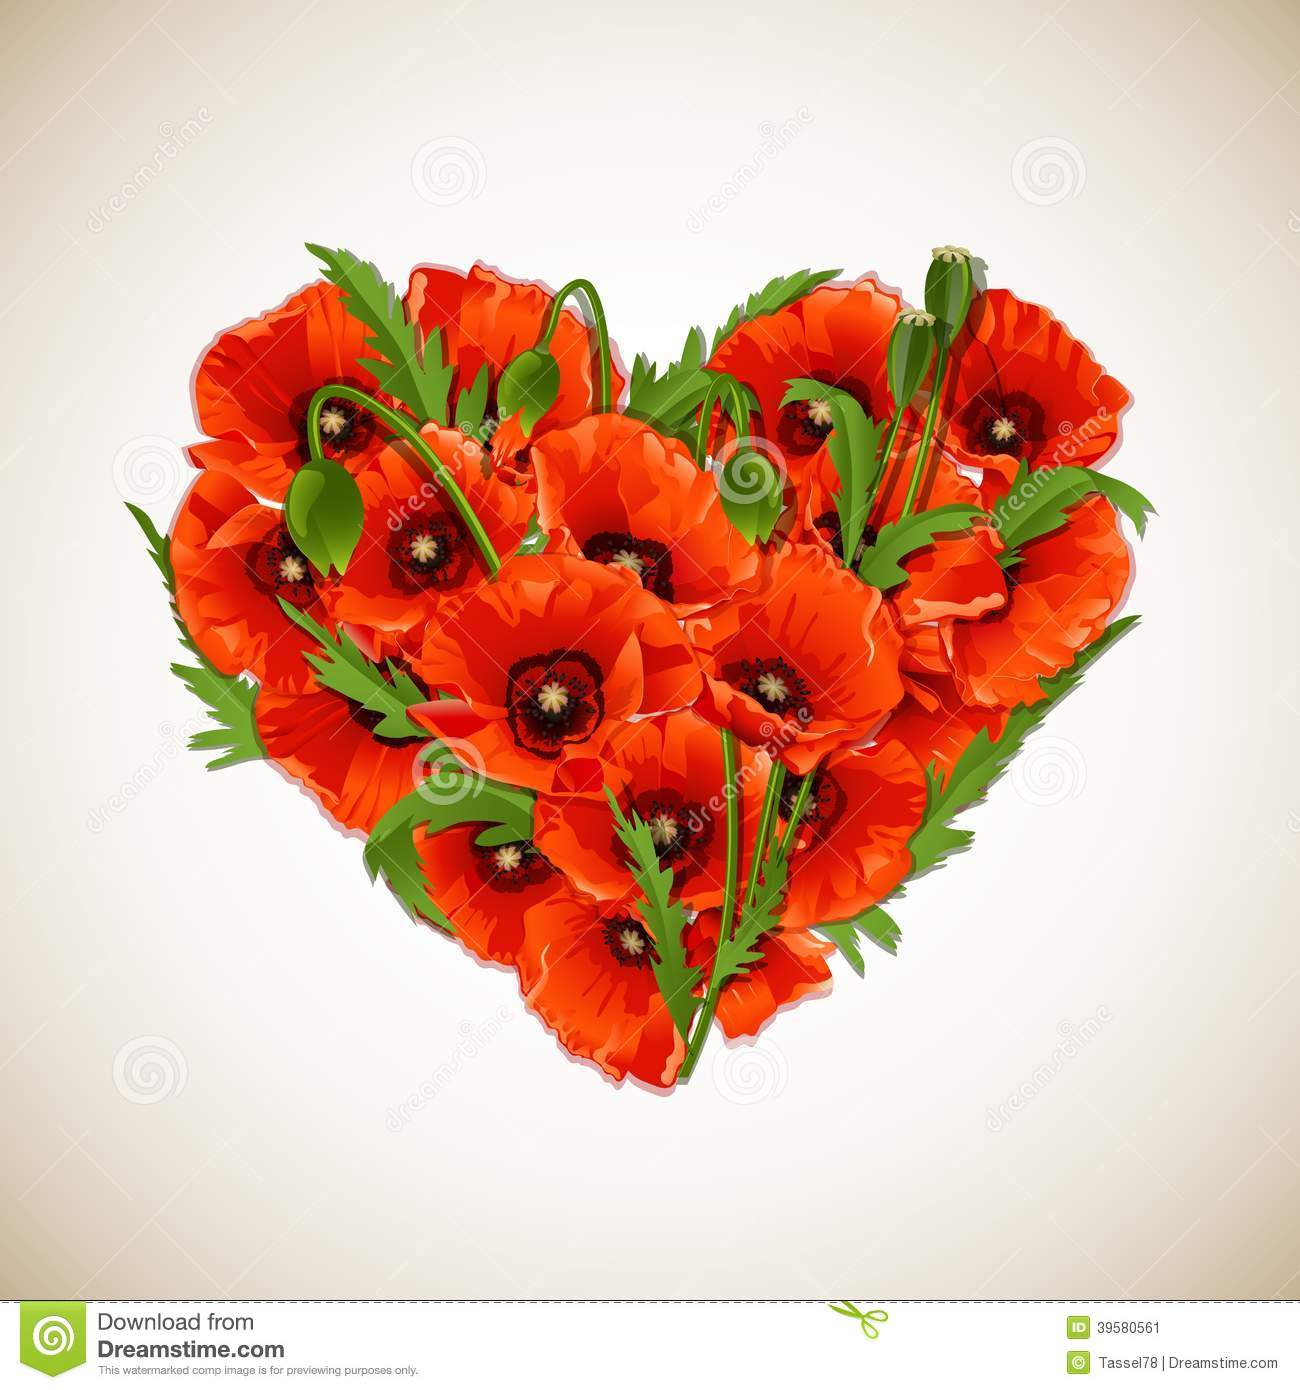 Flower Heart Of Red Poppies. Stock Vector - Image: 39580561